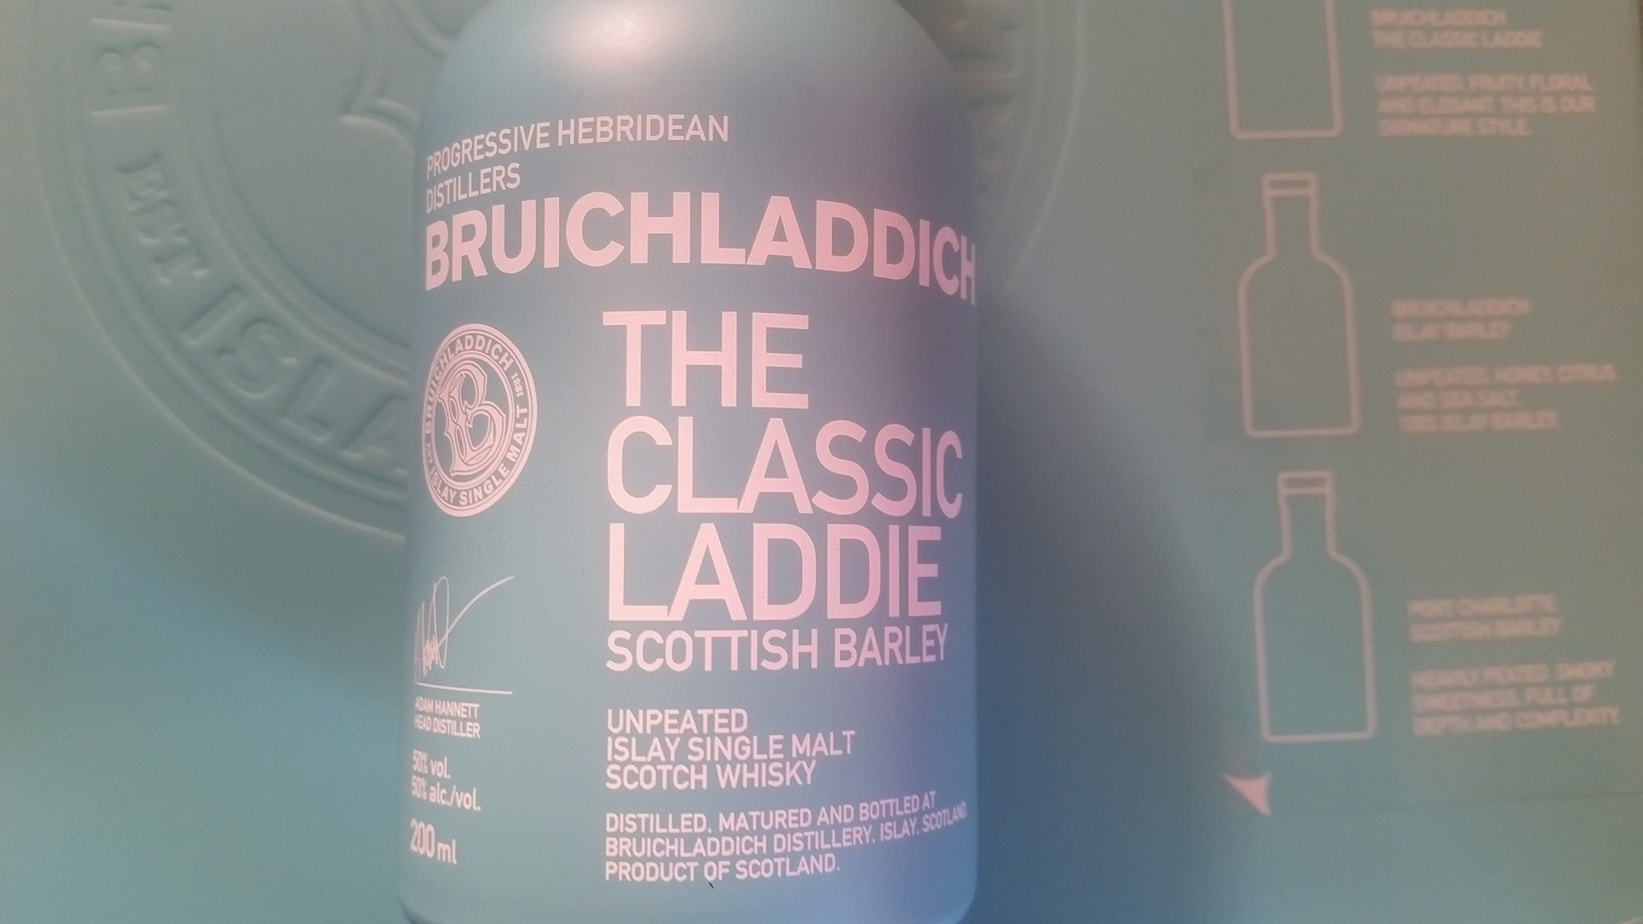 The Classic Laddie bottle and label